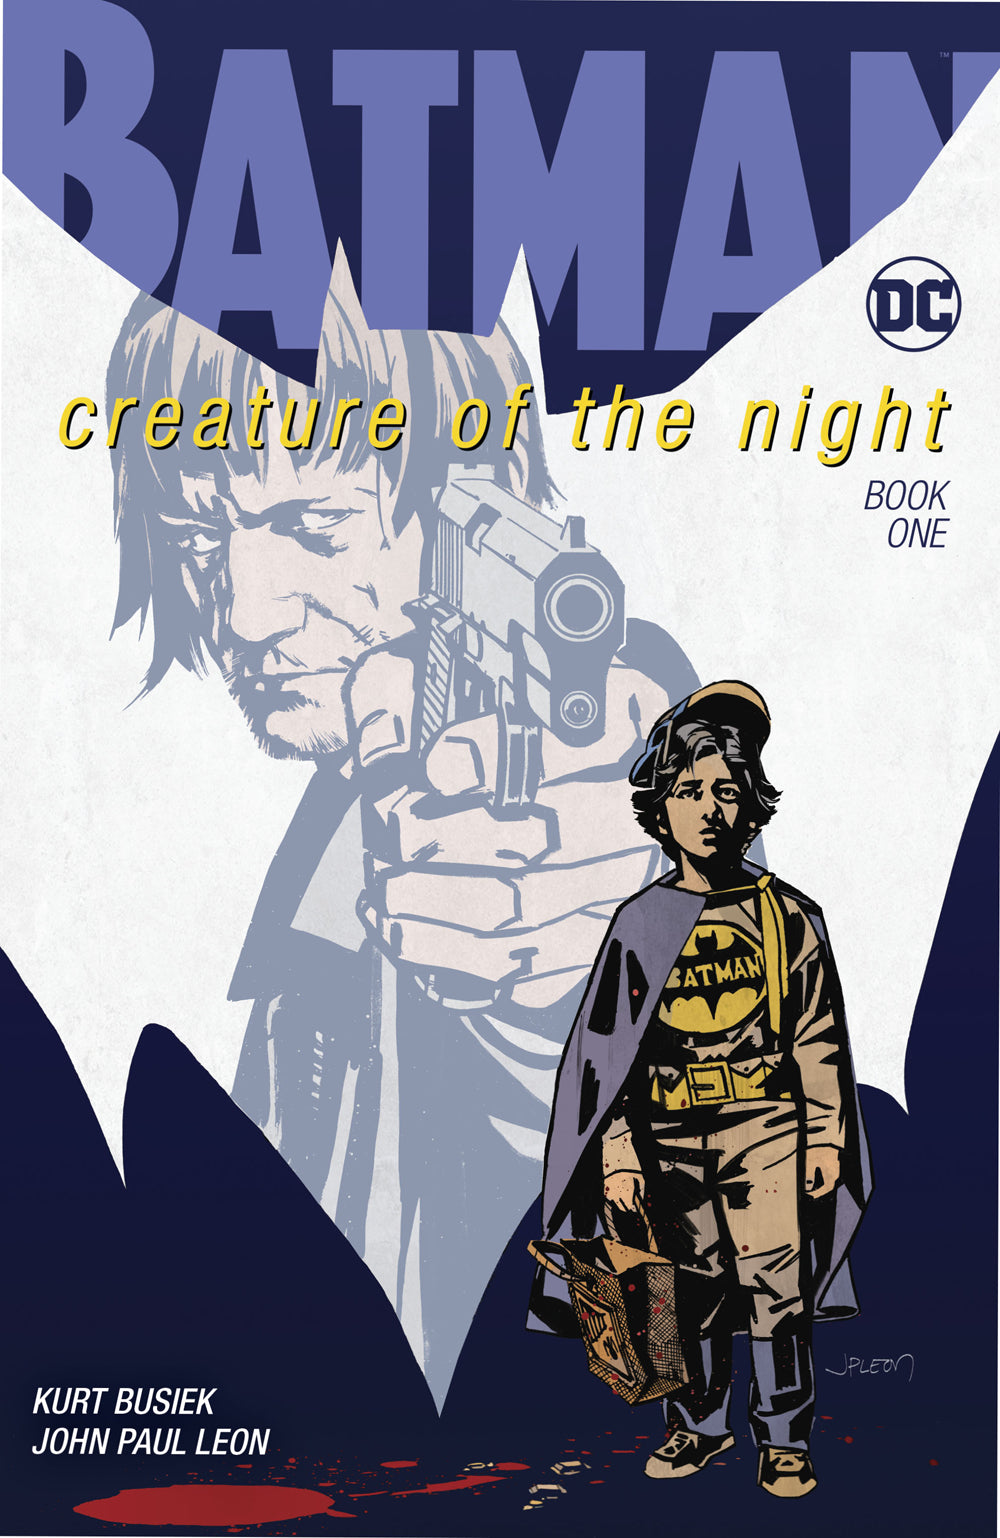 BATMAN CREATURE OF THE NIGHT #1 (OF 4) | Game Master's Emporium (The New GME)